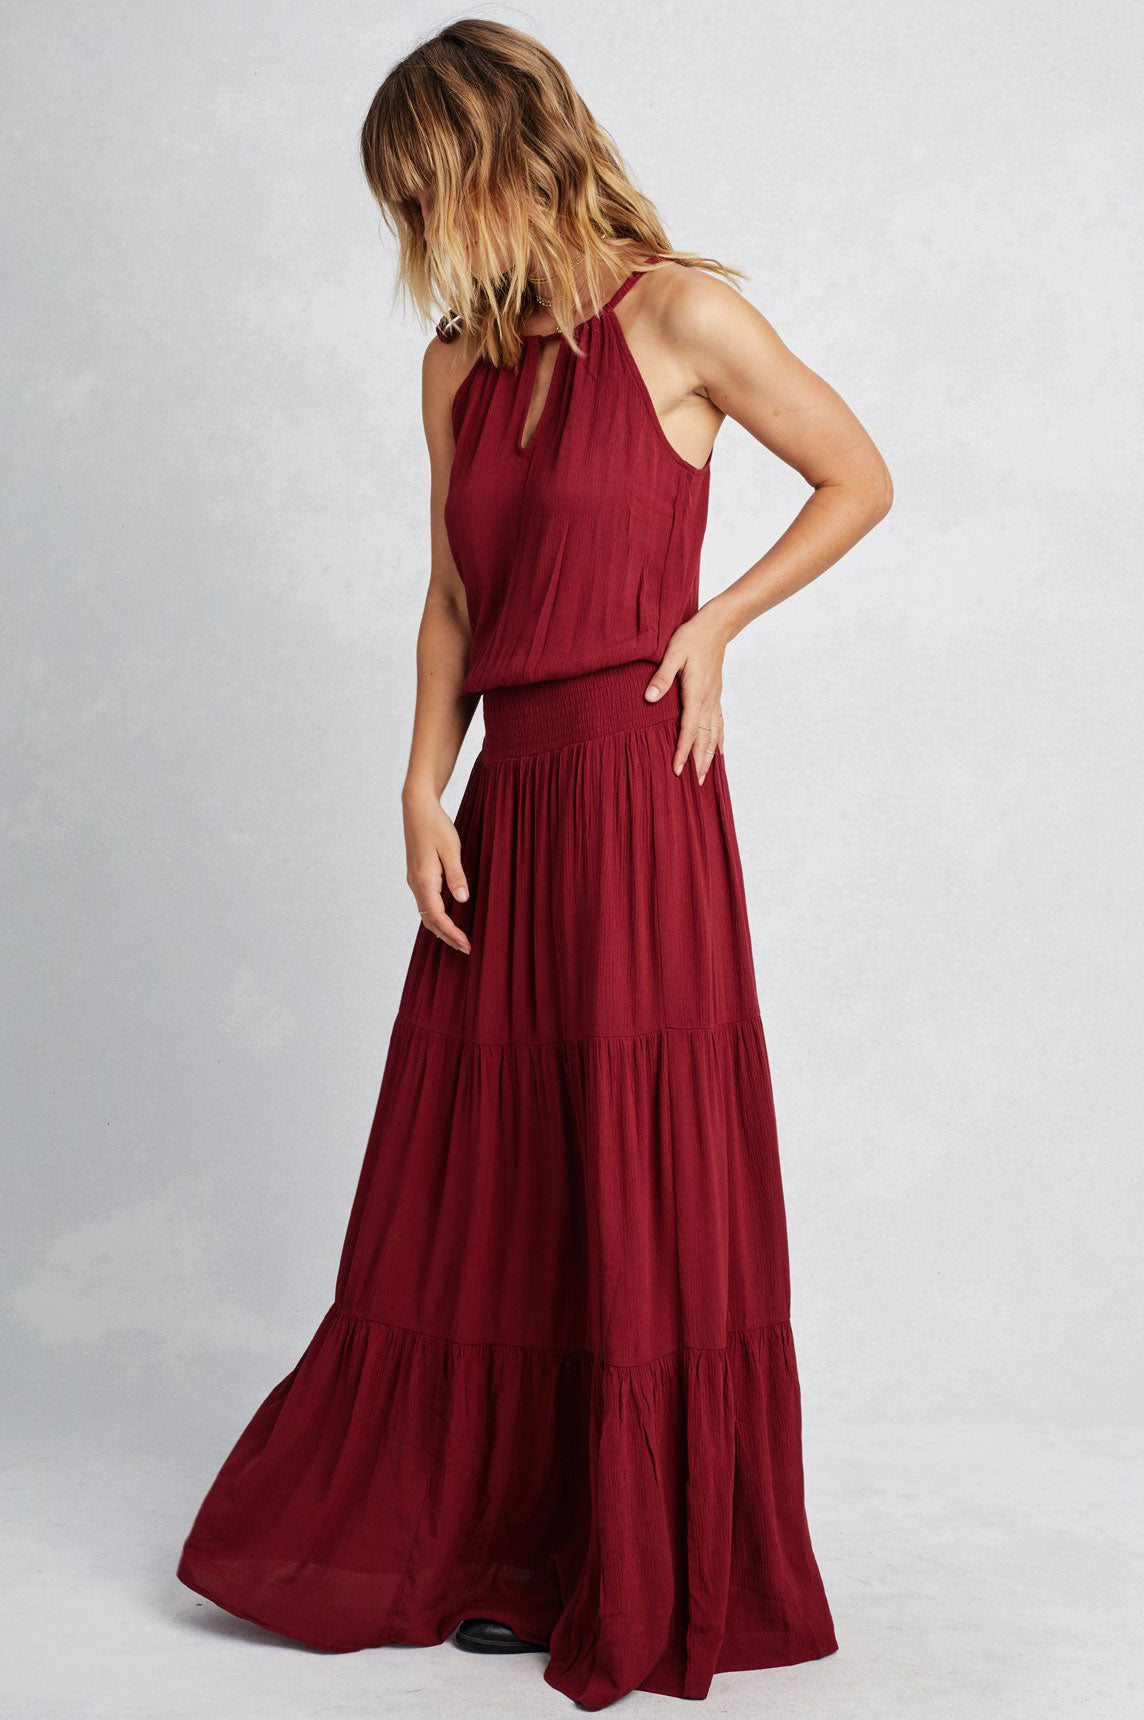 Women's sleeveless halter neck tiered peasant style casual maxi dress. Burgundy wine red